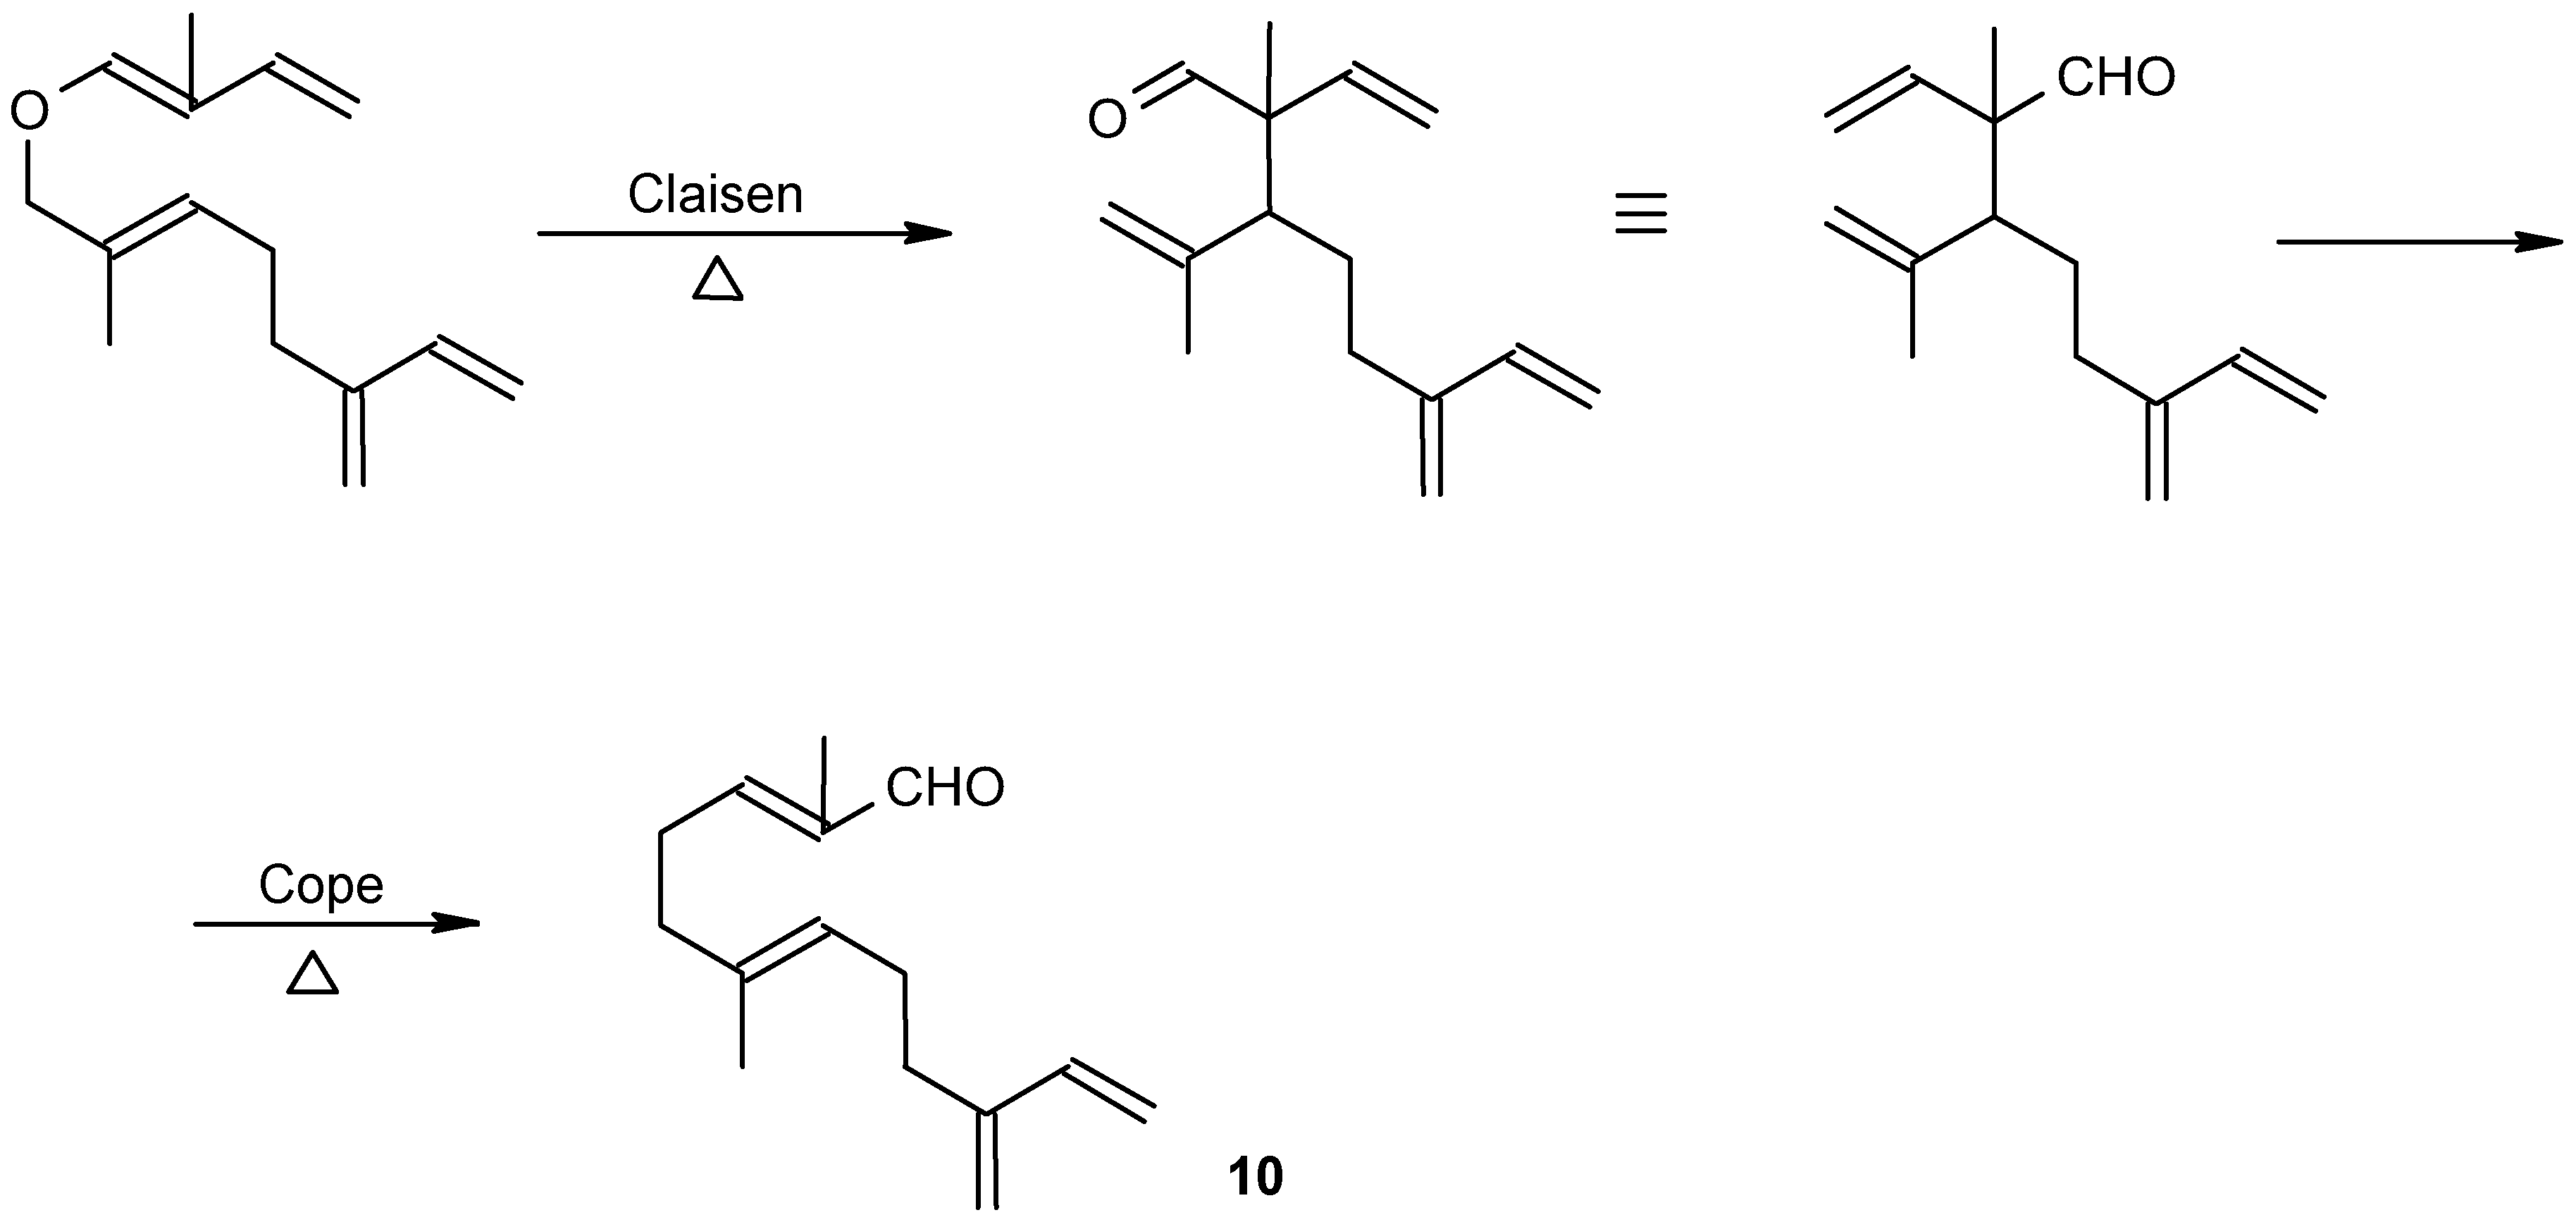 Molecules   Free Full-Text   Claisen, Cope and Related